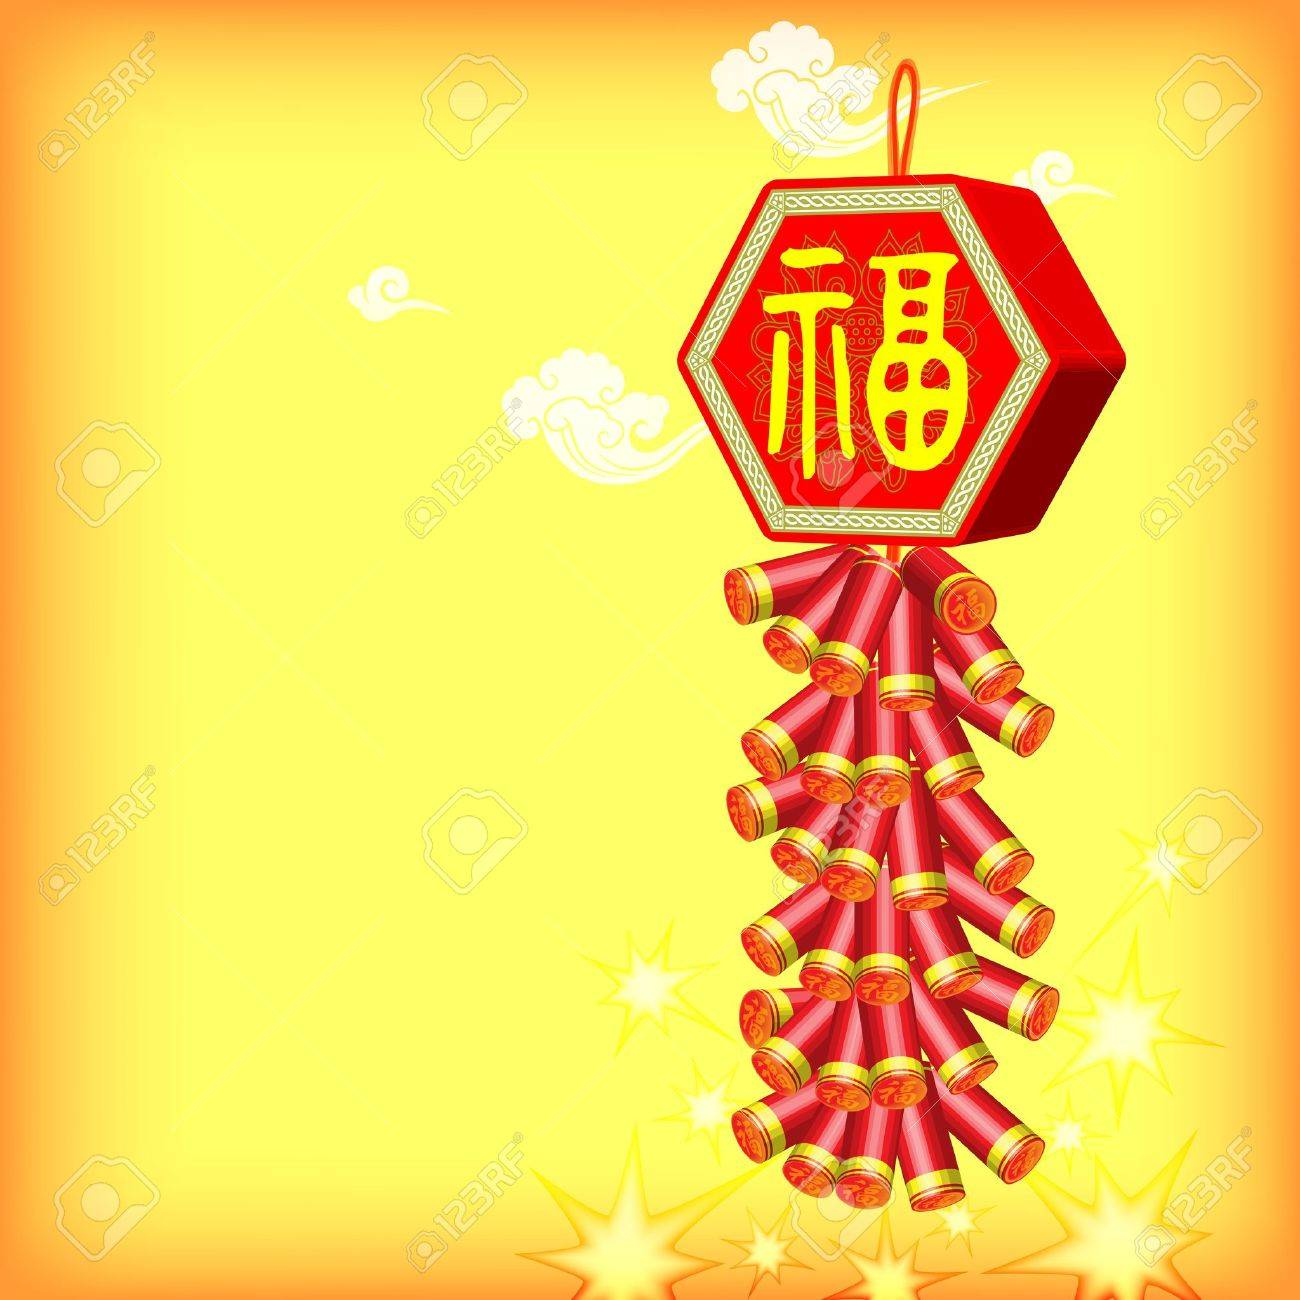 vector vector yellow background with fire cracker happy new year and chinese festivals chinese new year fu decorative elements